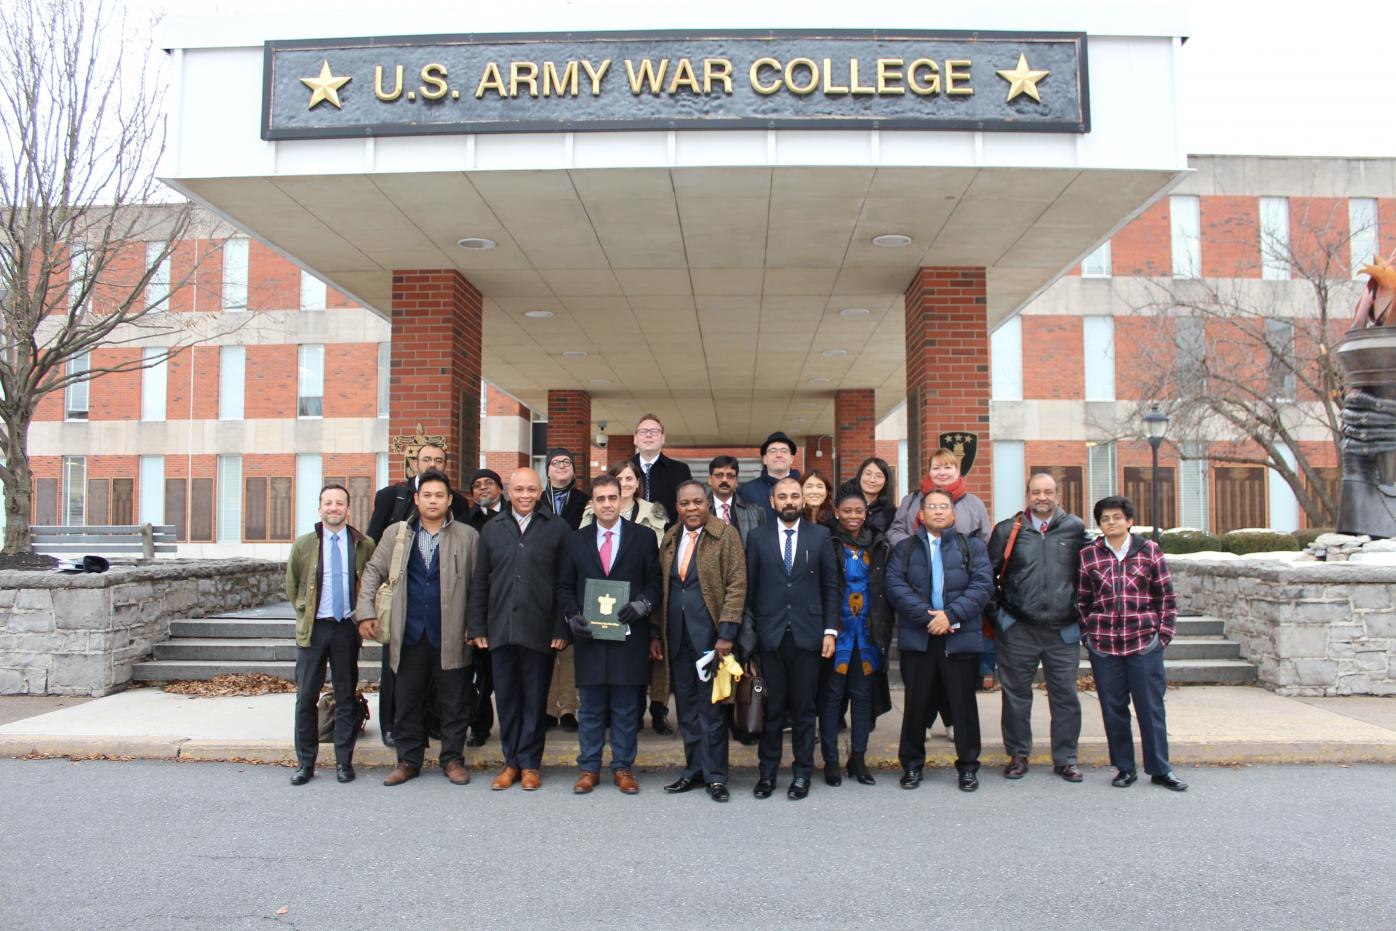 2019 Study of the U.S. Institute for Scholars on National Security Policy Making Participants at U.S. Army War College